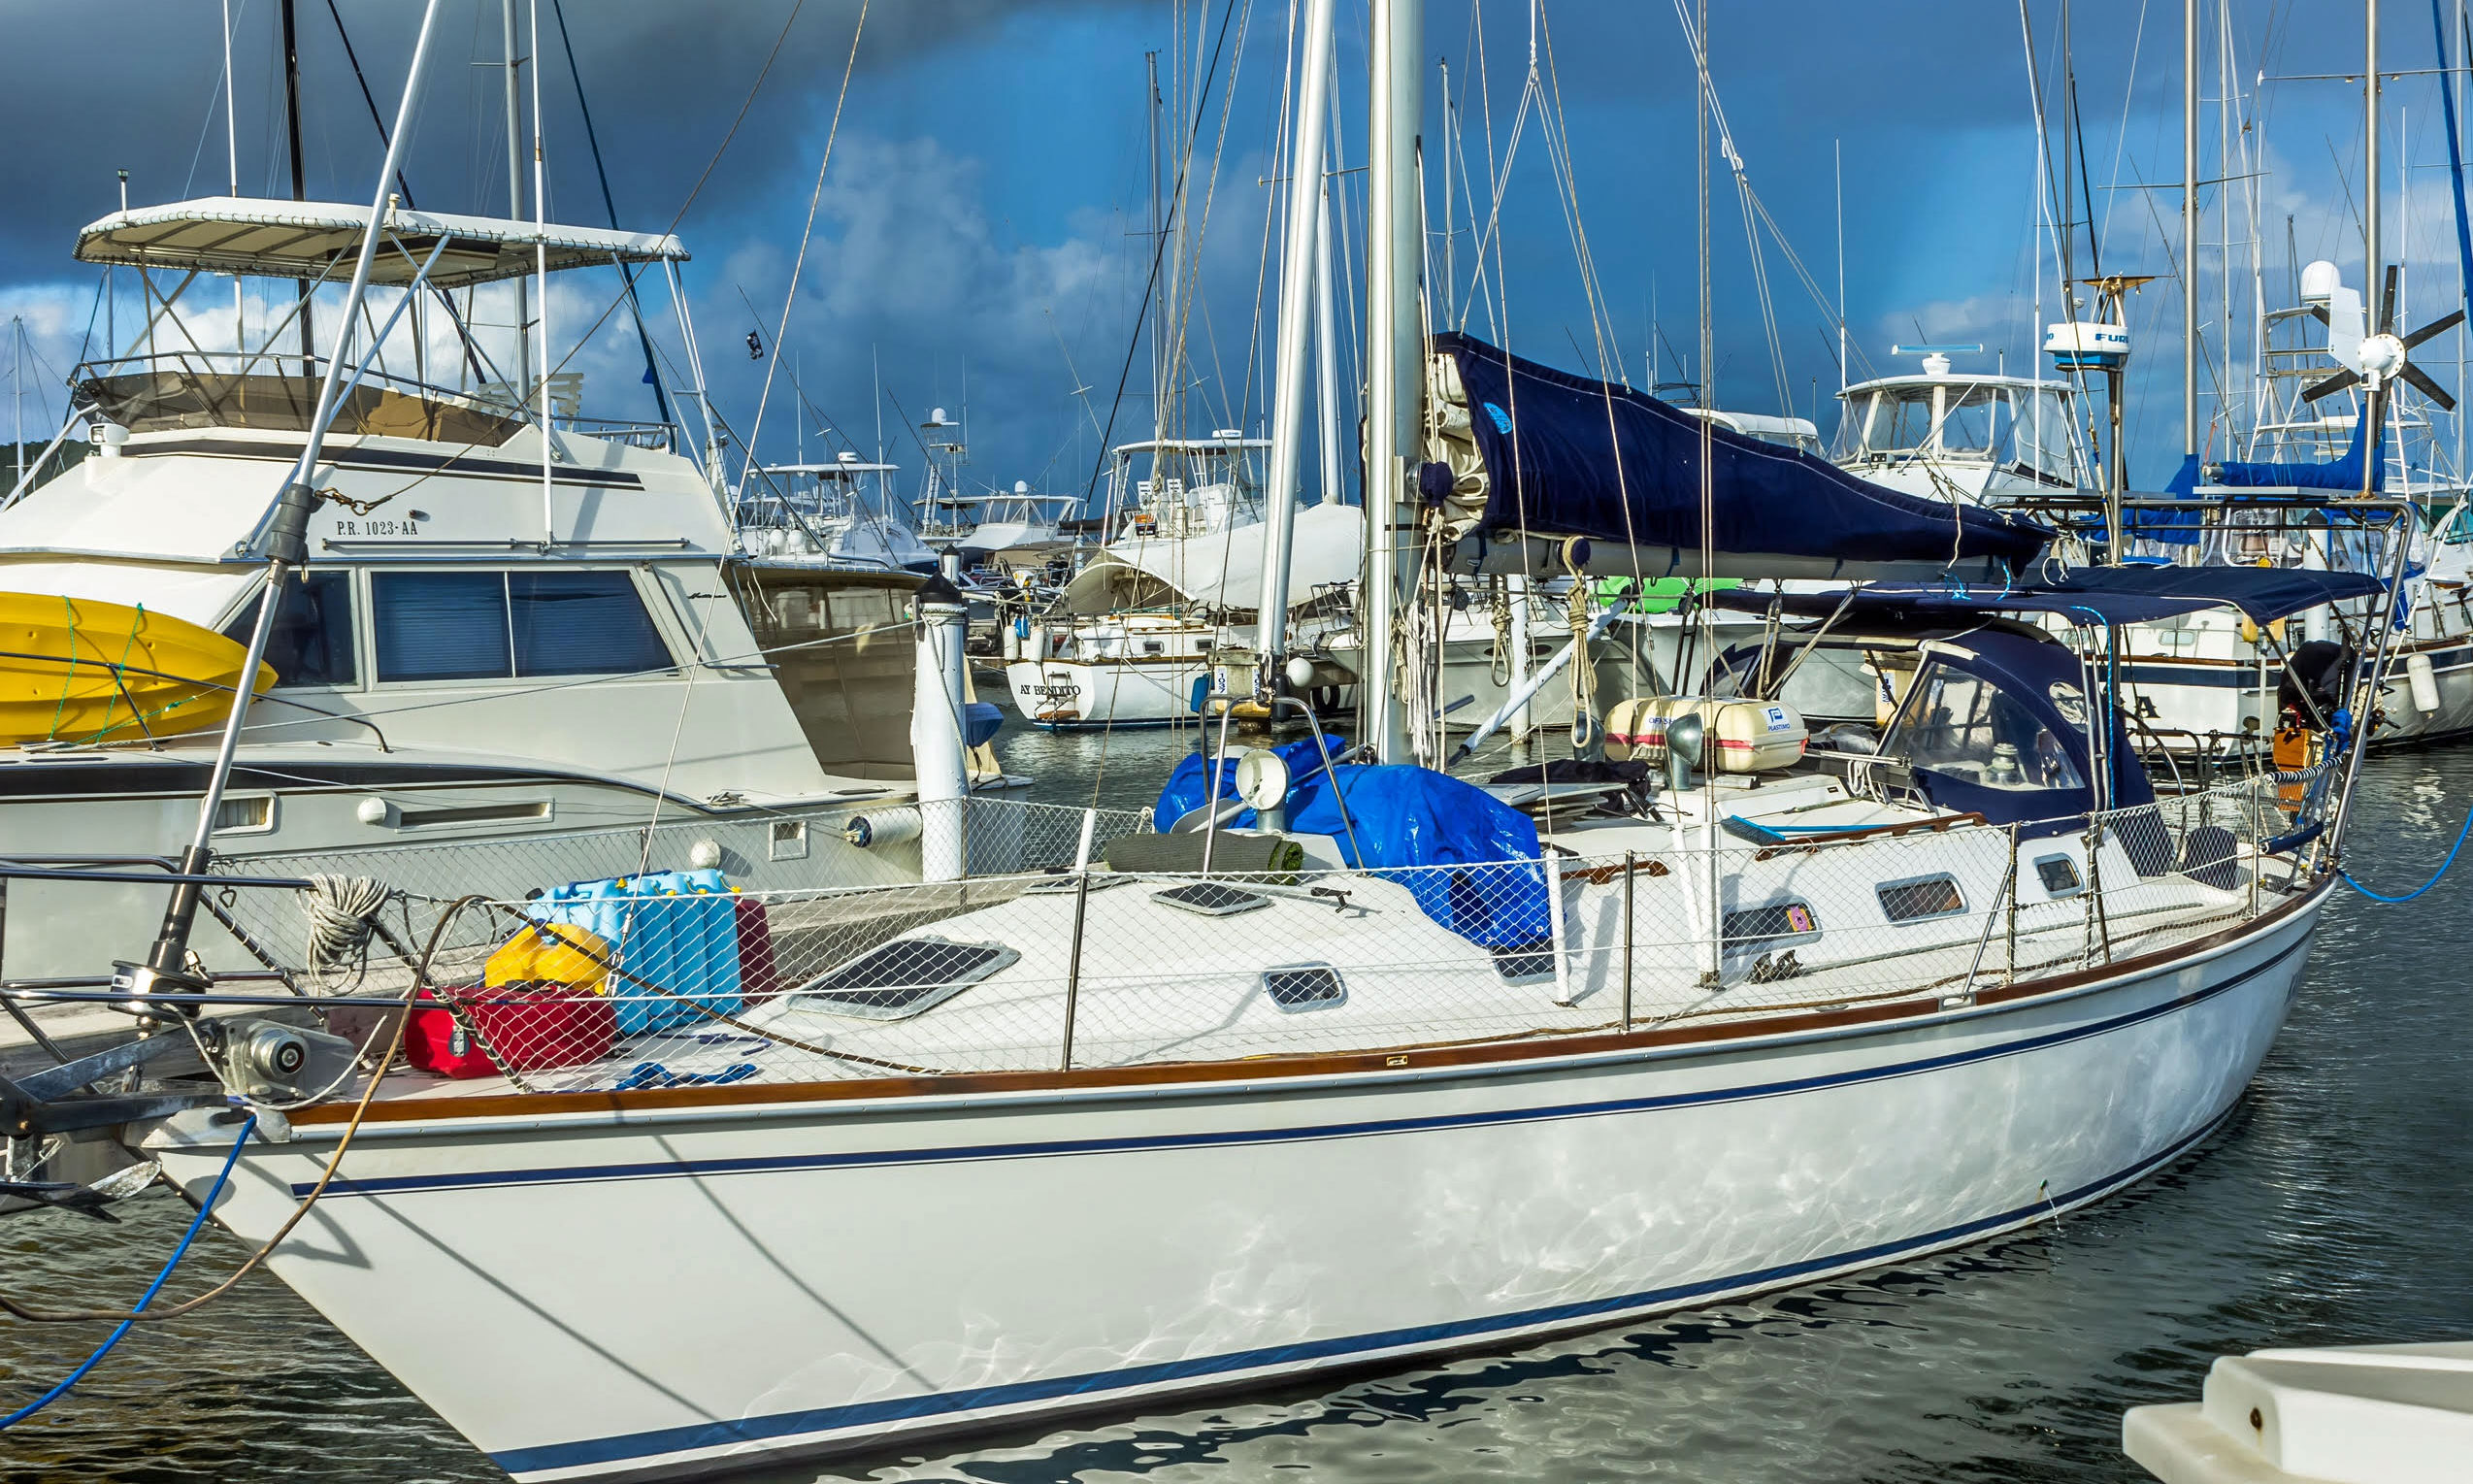 A Pearson 38 sailboat for sale